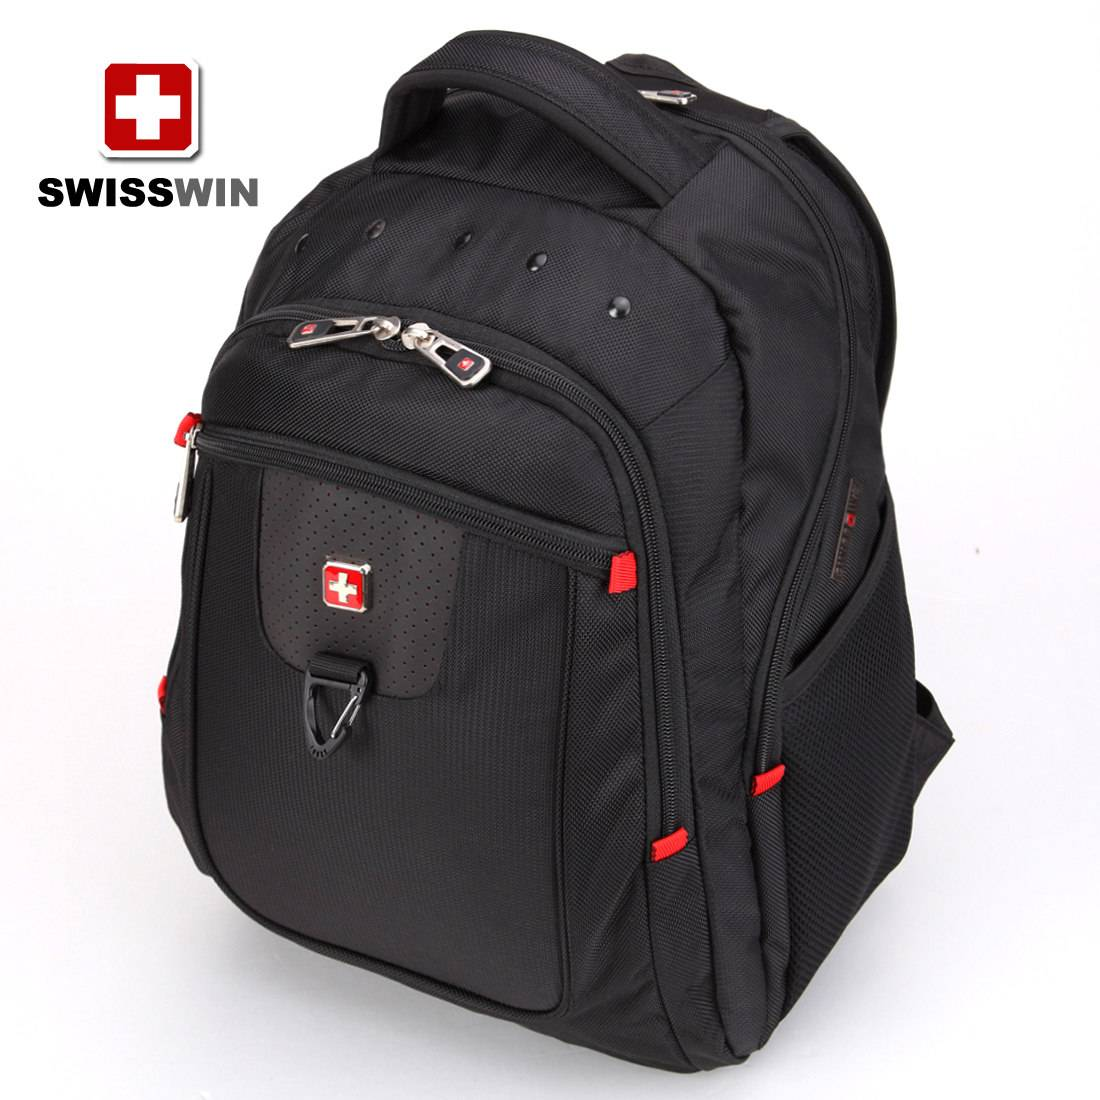 SWISSWIN Army Knife Backpack computer backpack travel backpack business casual backpack male and fem